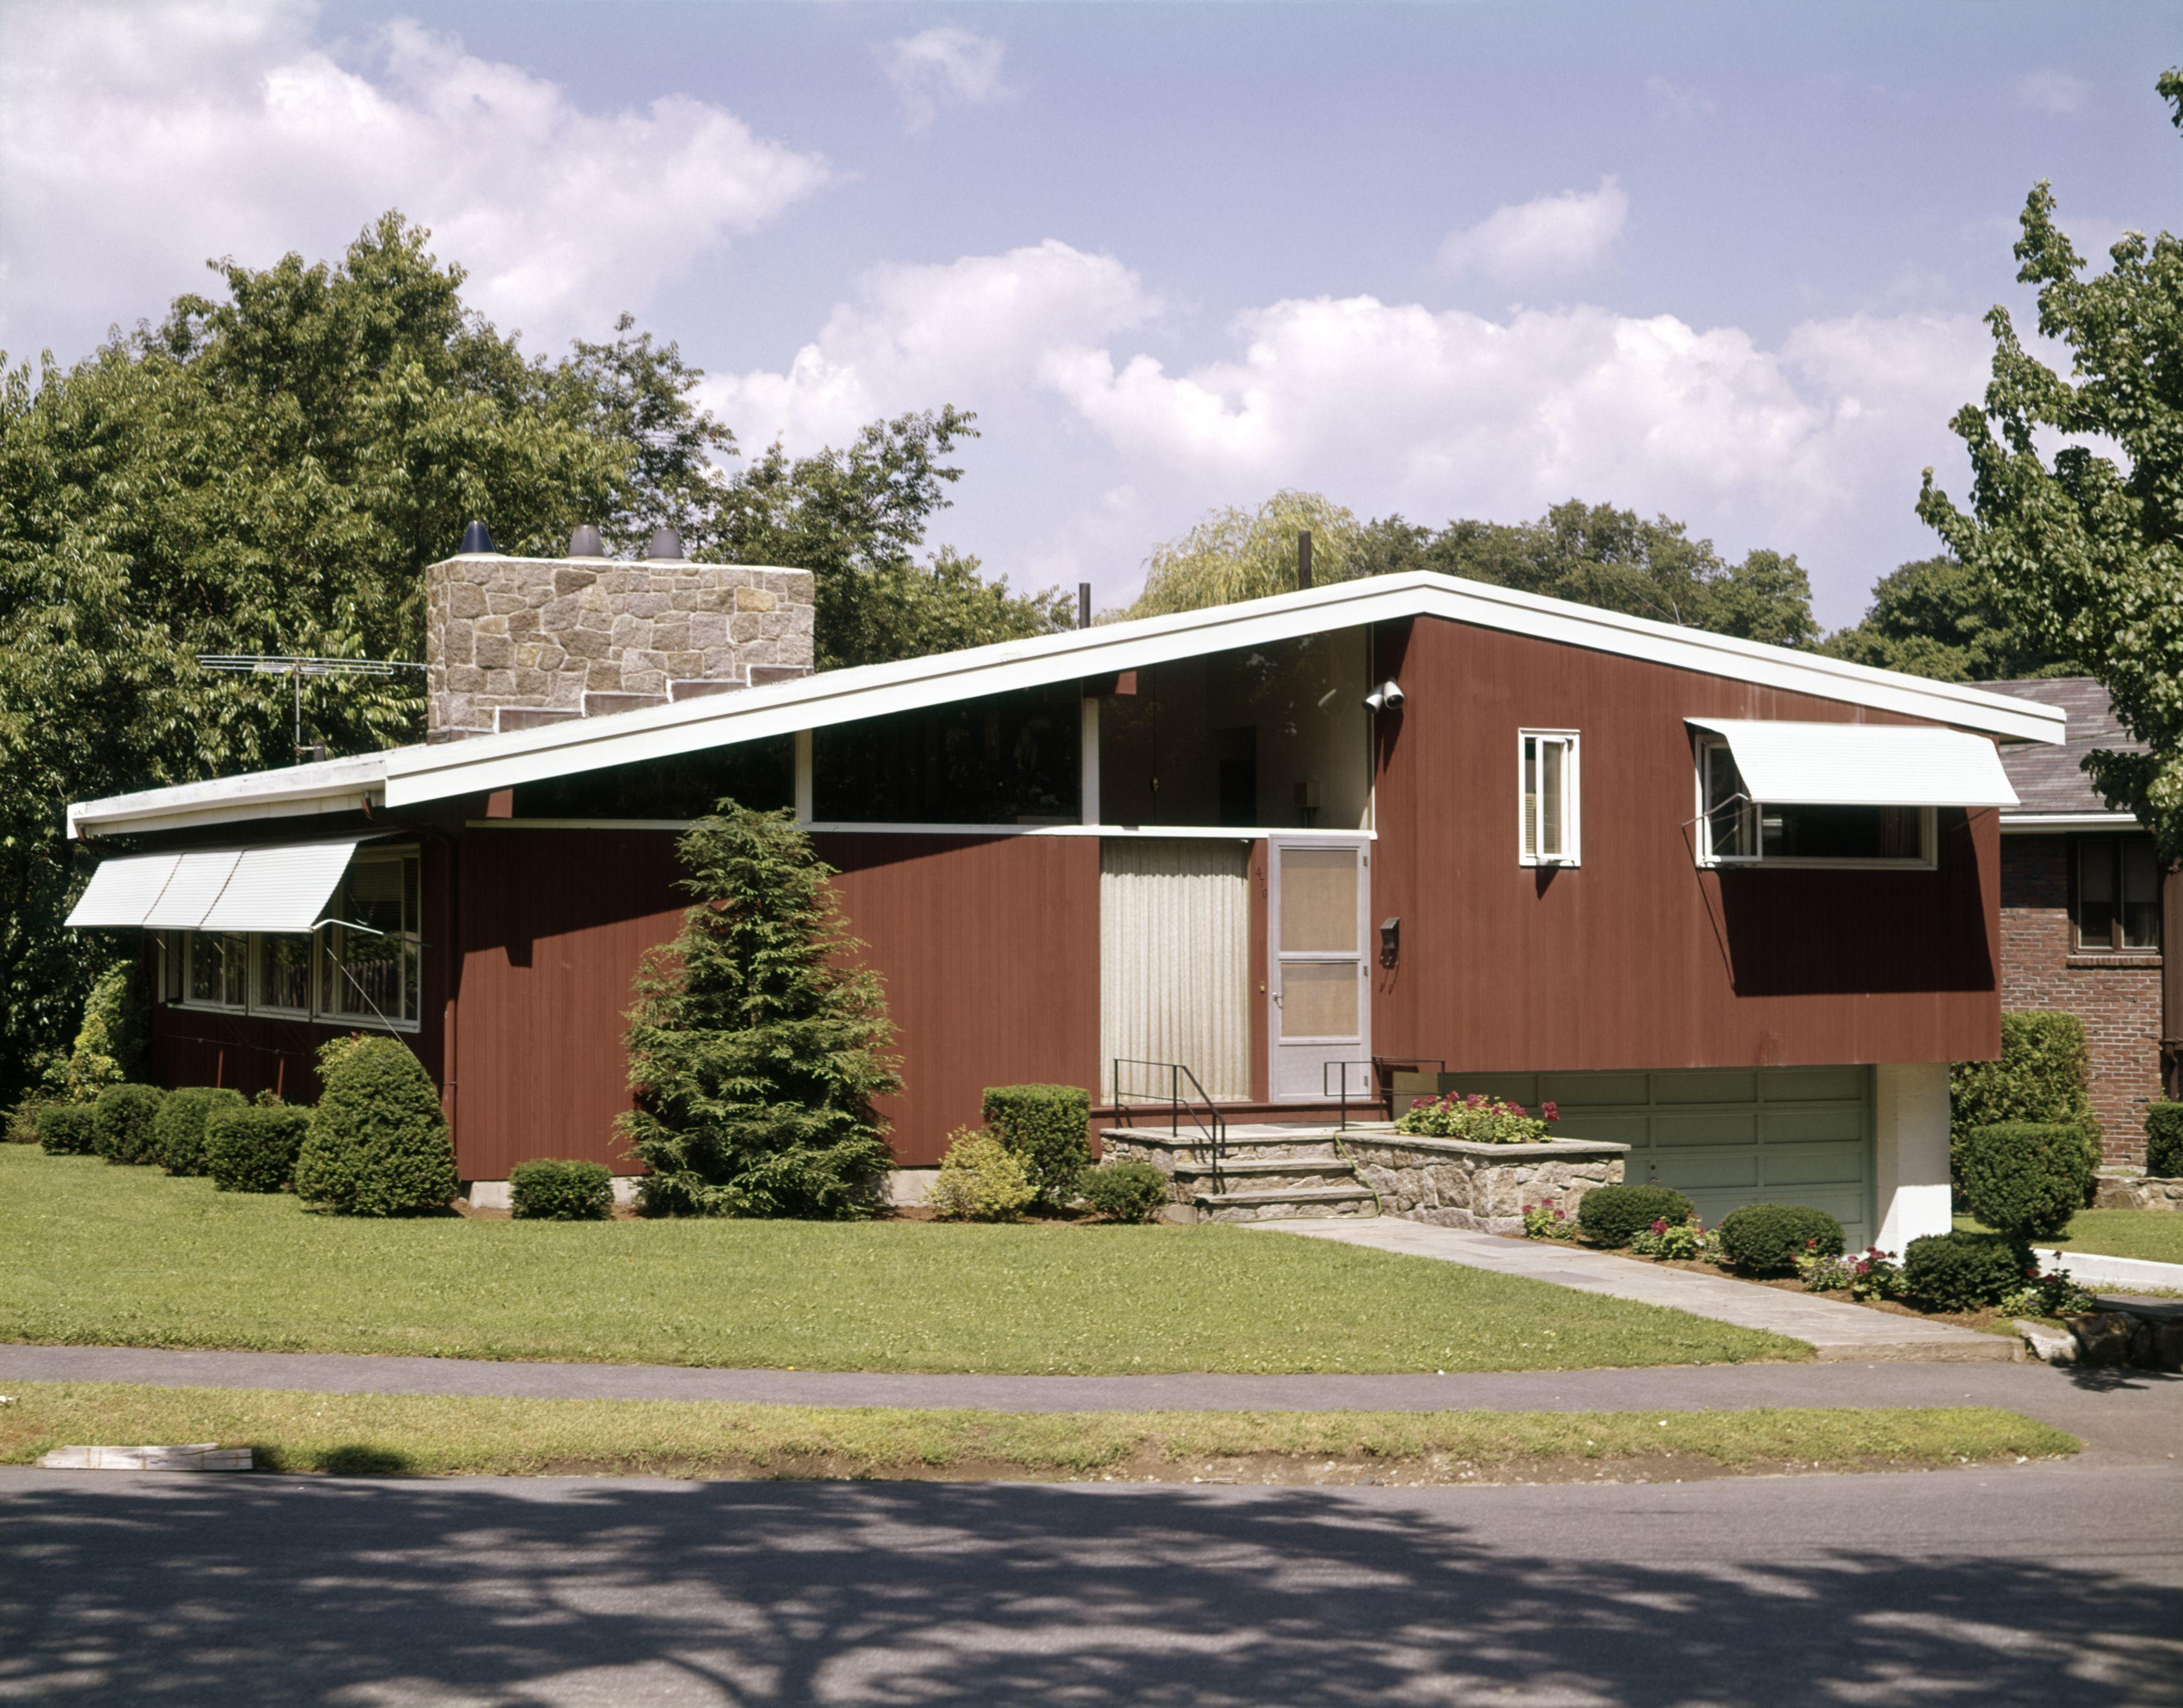 Remodel Ranch Style Houses 1950s 60s